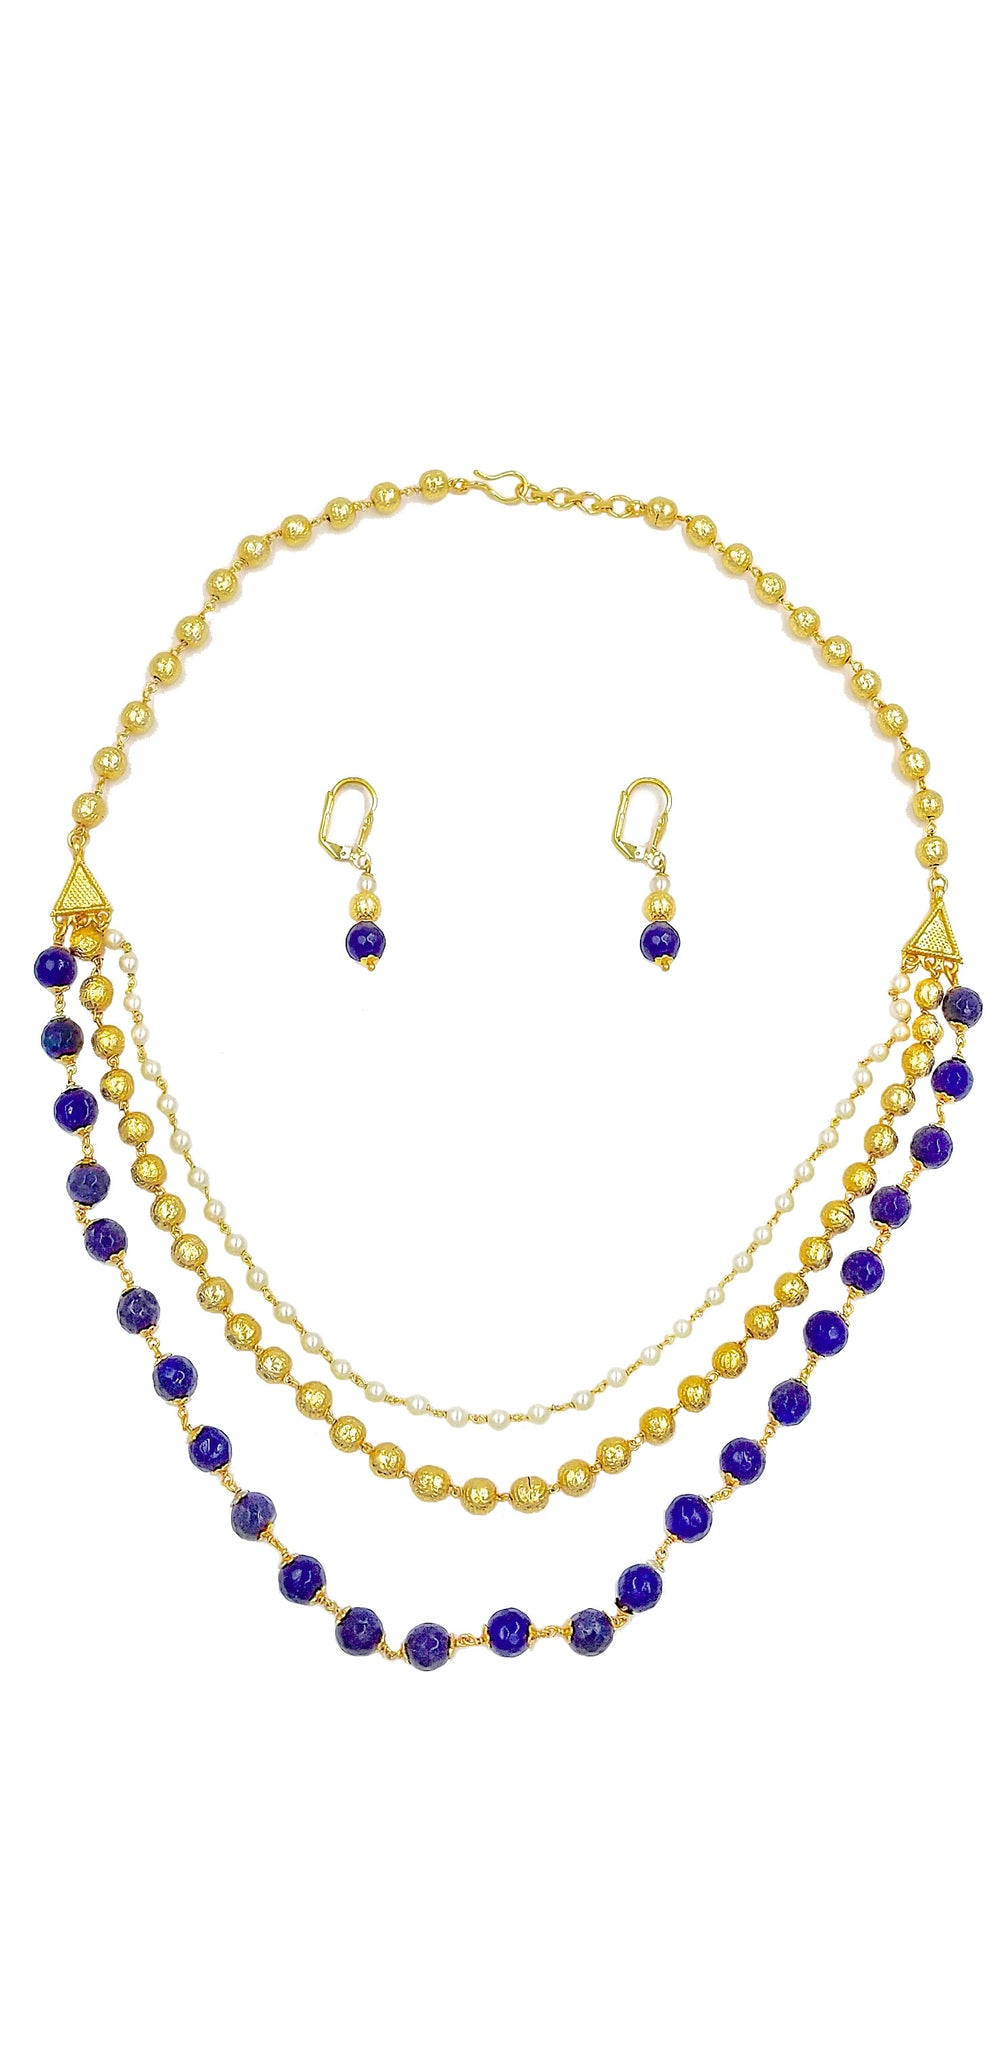 MICRON GOLD PLATED 3 LINE NECKLACE SET WITH SEMI-PRECIOUS BLUE STONES